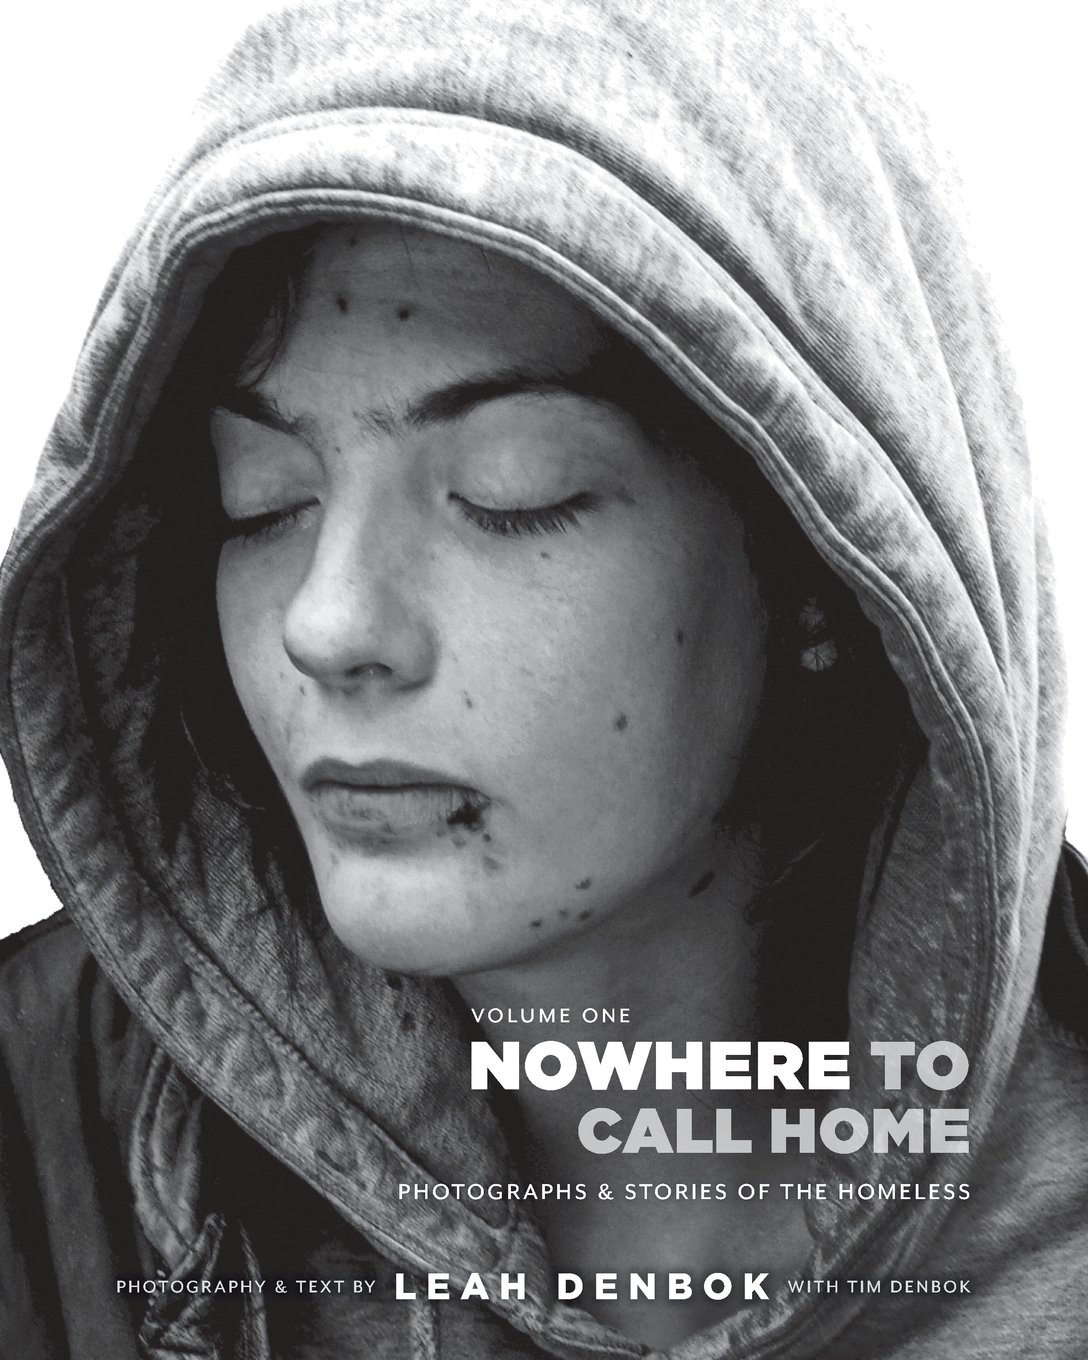 Nowhere to call home photographs and stories of the homeless leah